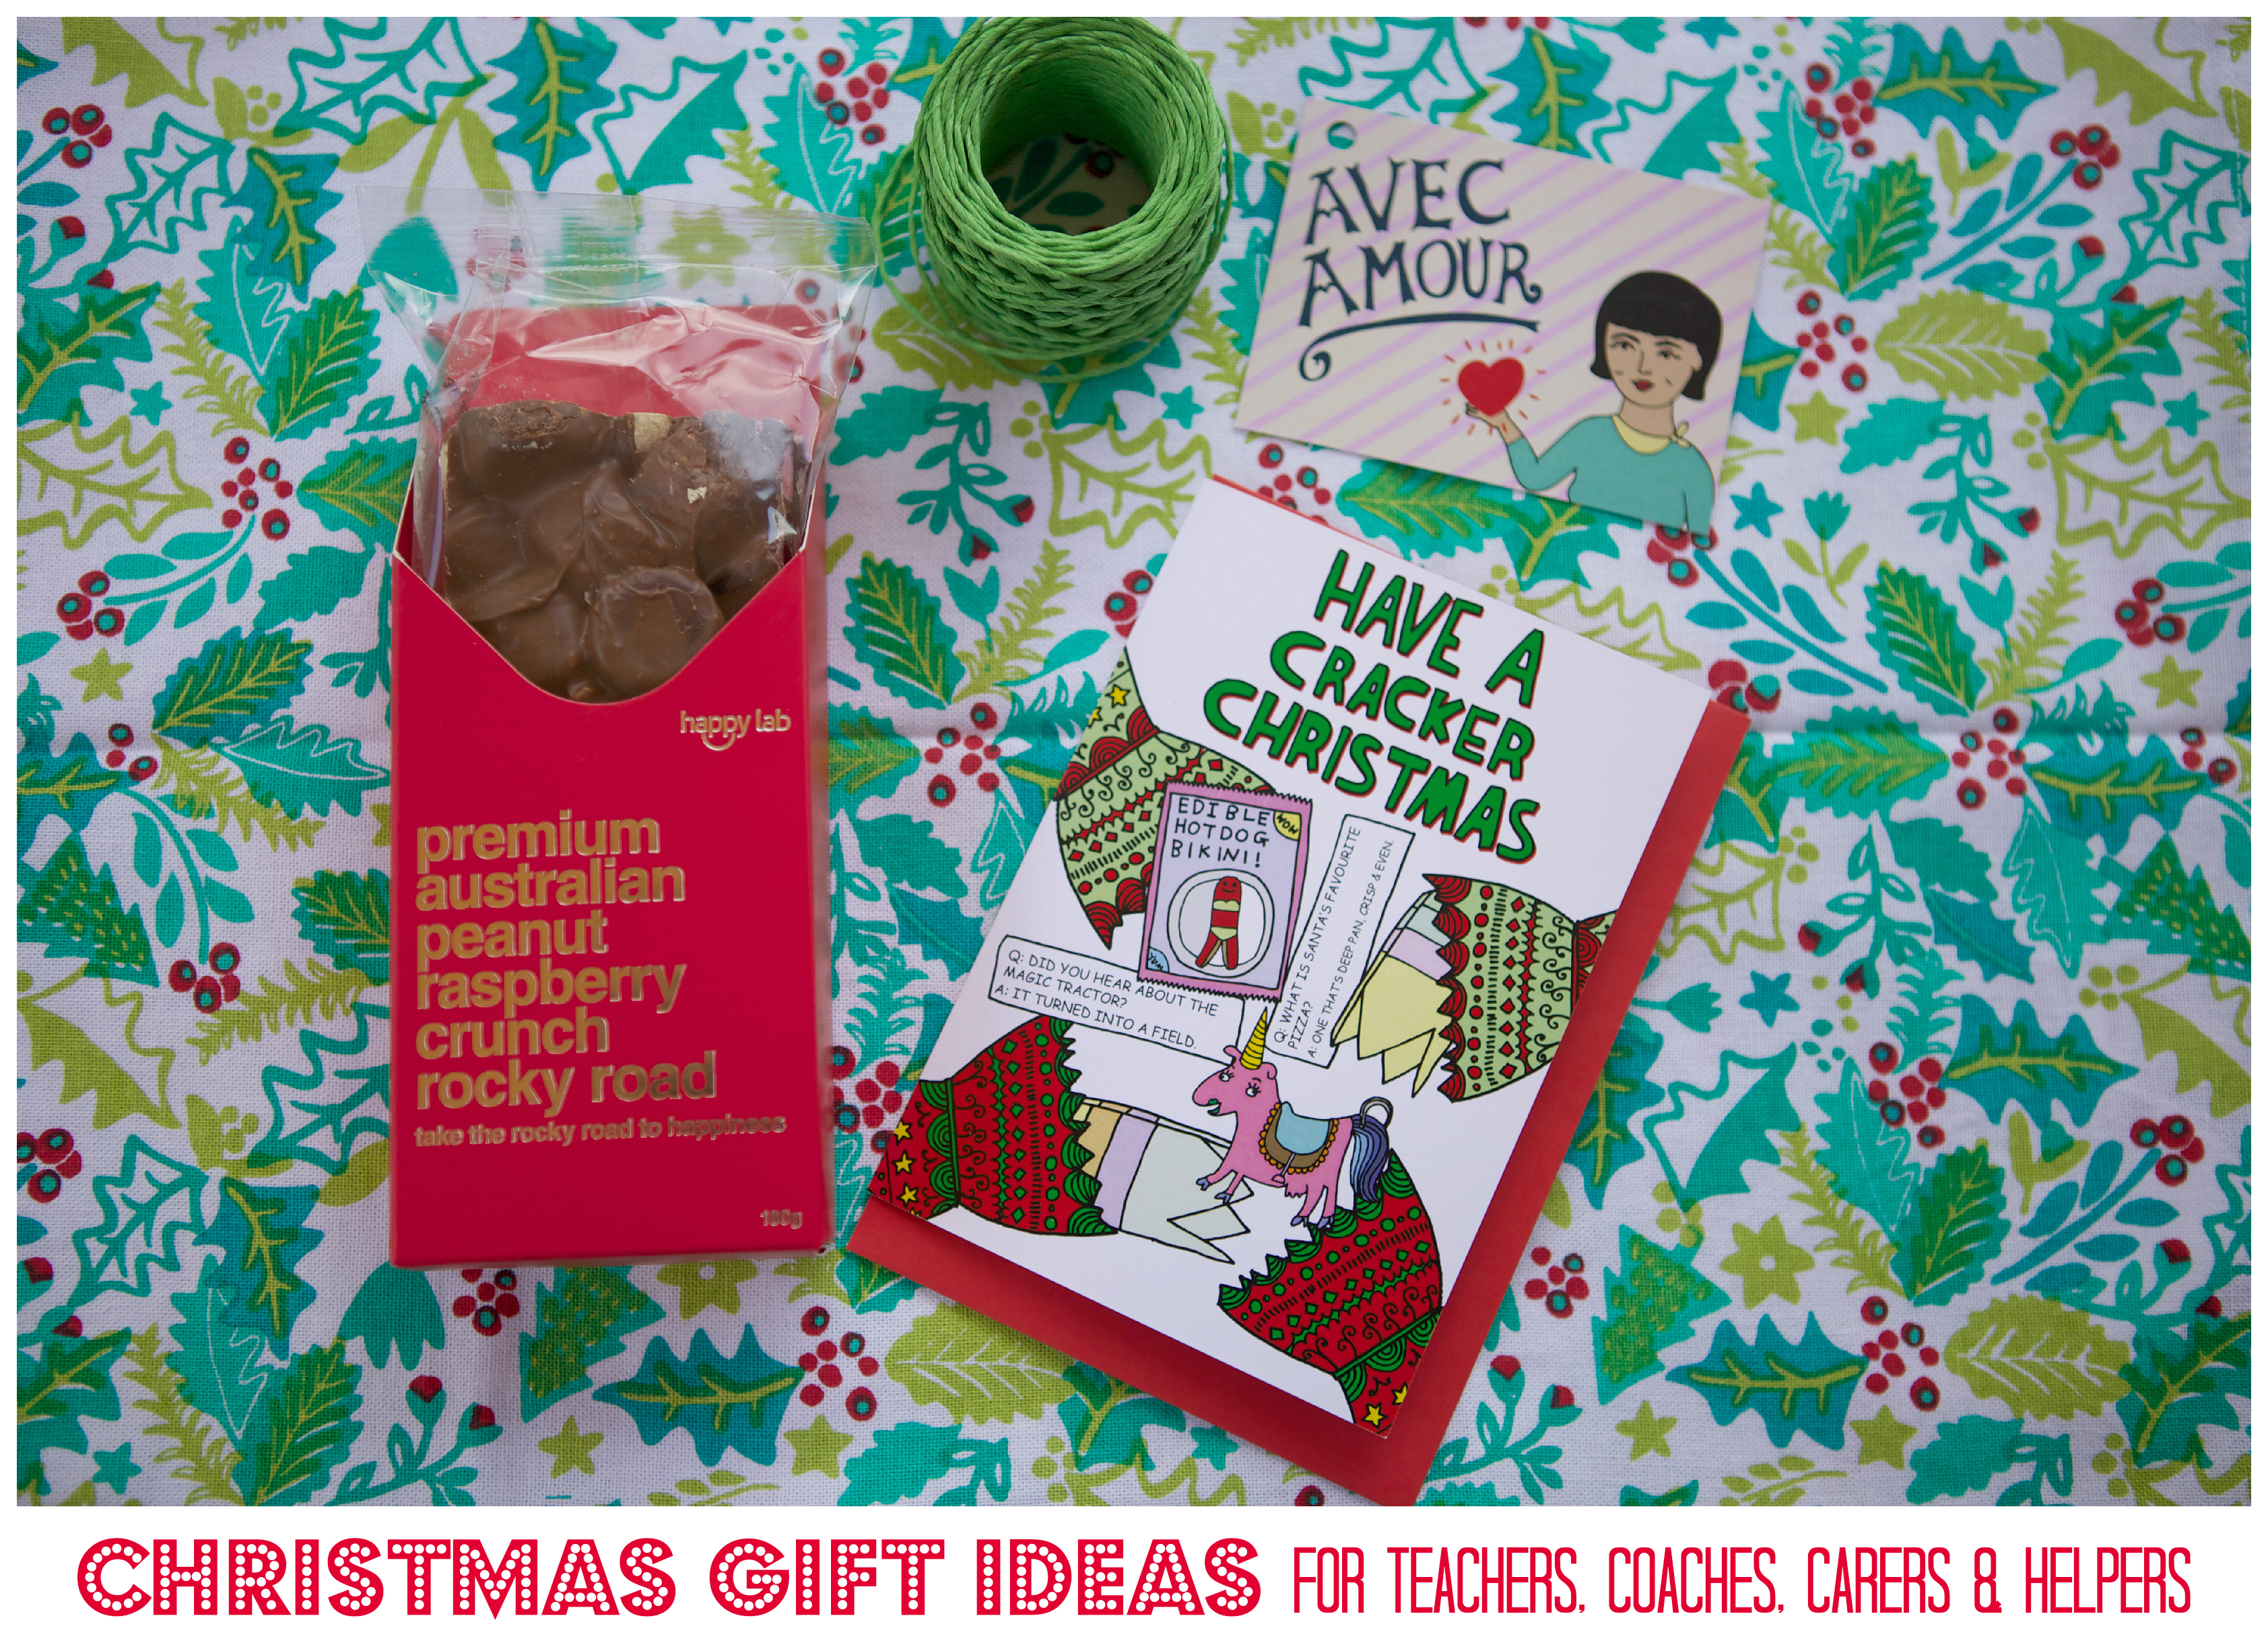 Christmas Gift Ideas For Friends.Christmas Gift Ideas For Teachers Coaches Friends